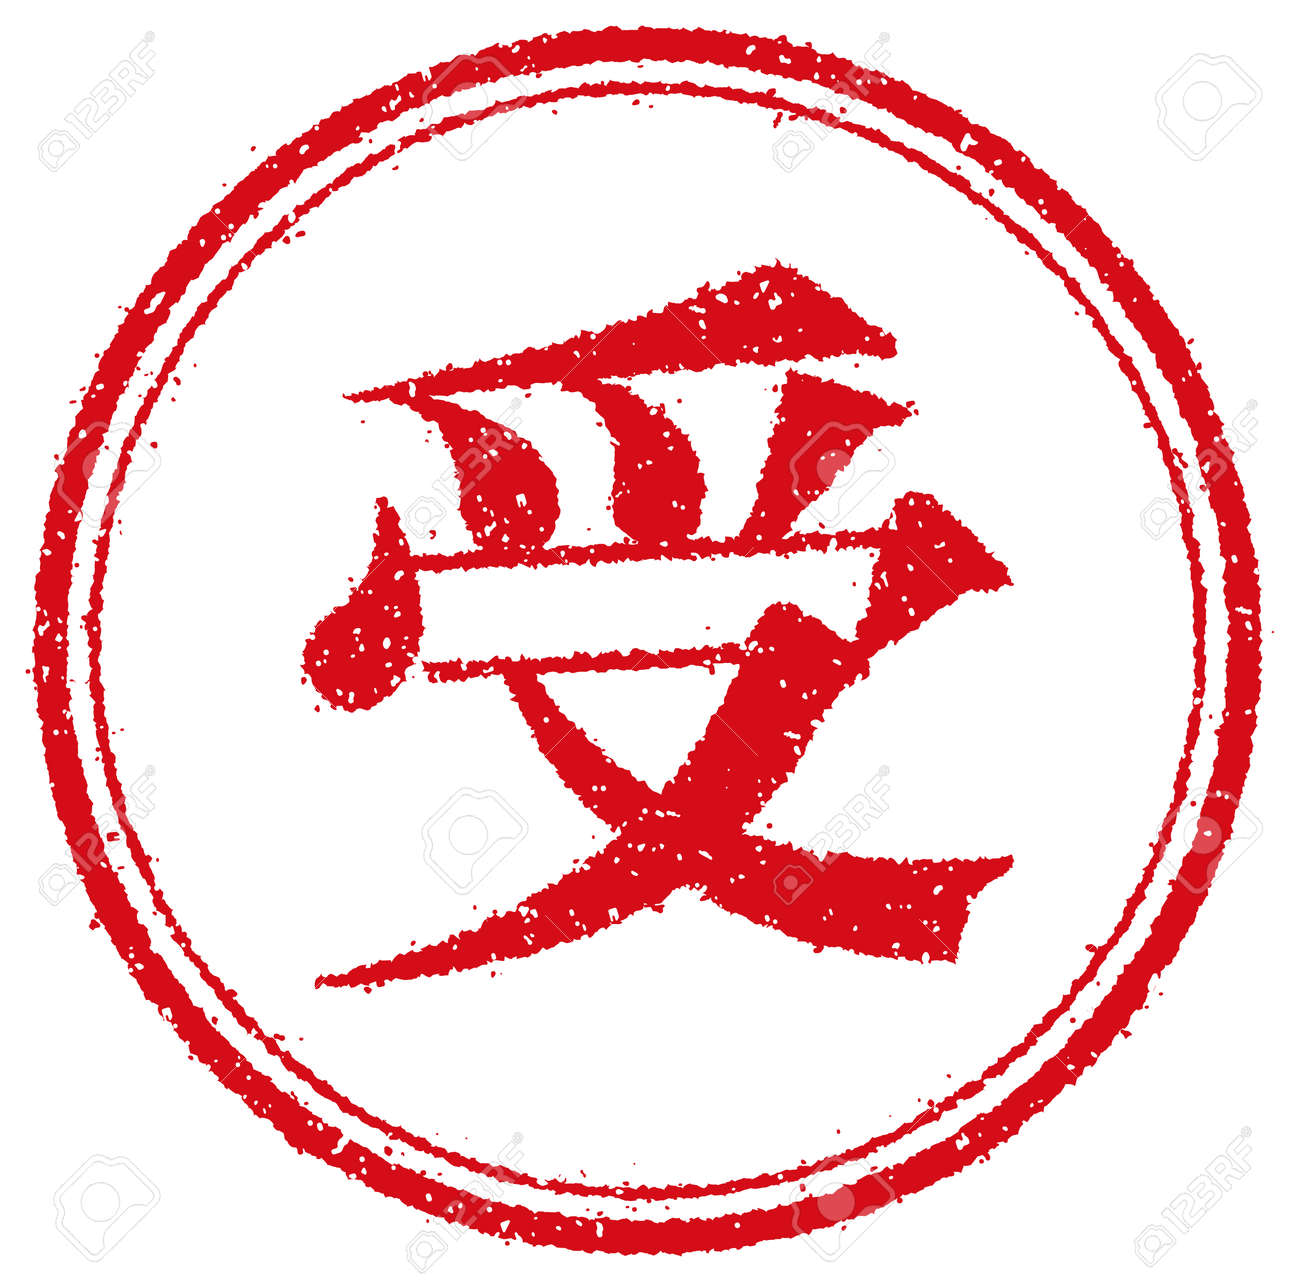 Rubber stamp illustration for Japanese business   receive, accept - 168732372